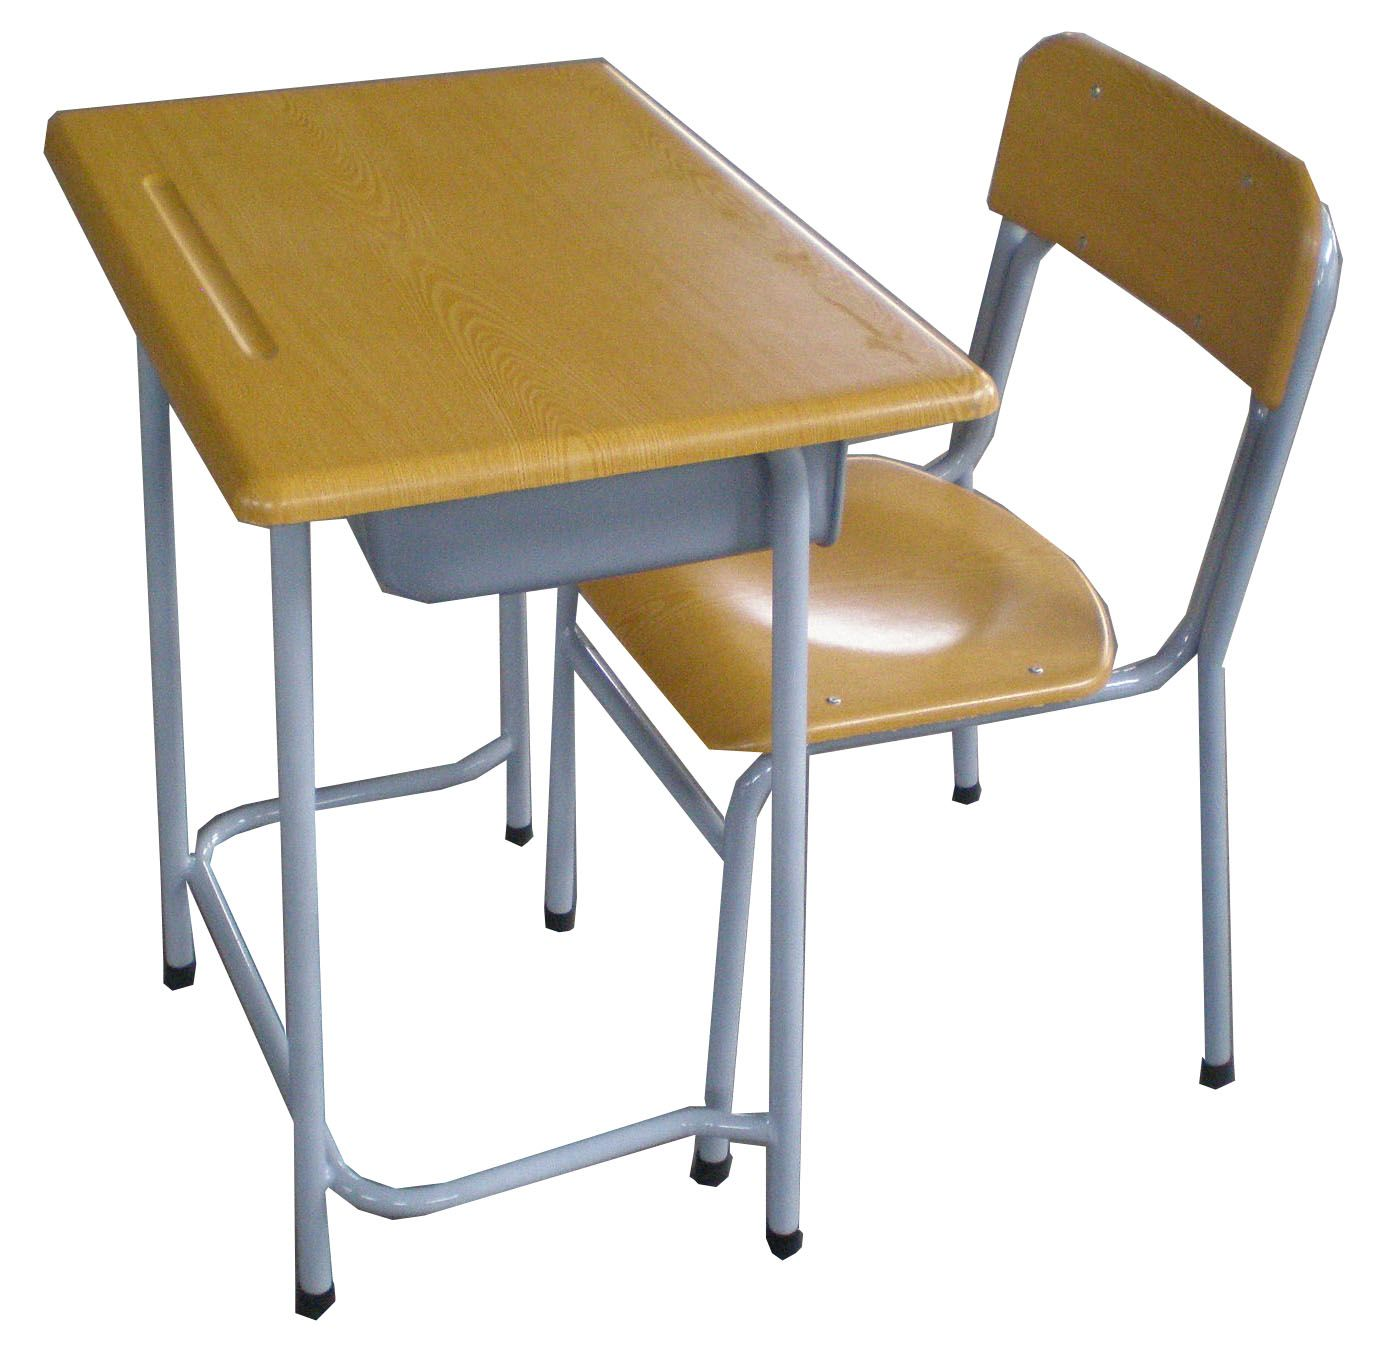 School Desks And Chairs Clipart Best